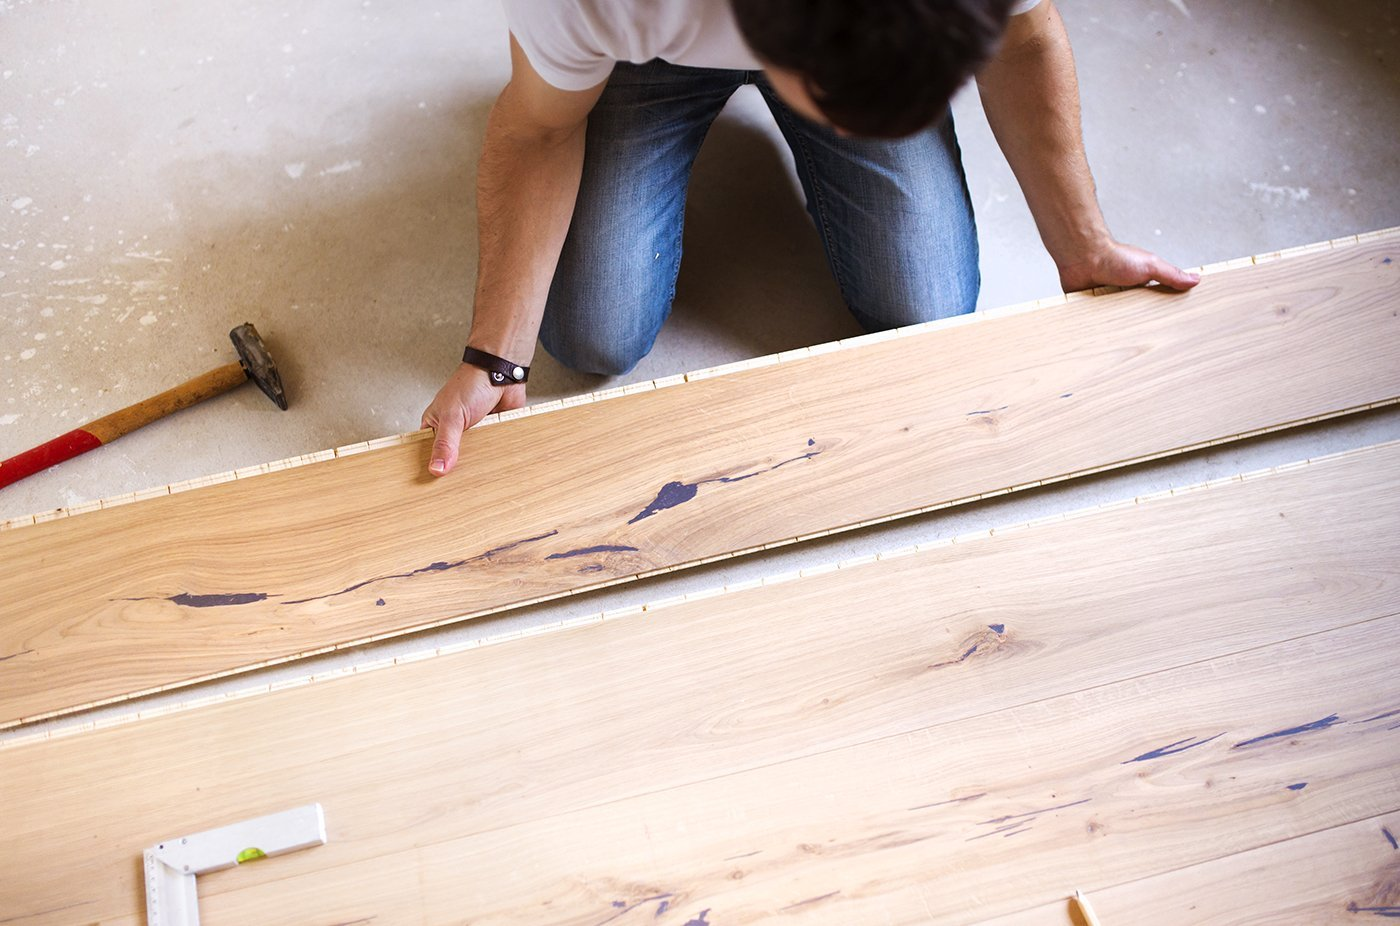 9 Simple Home Improvements that will add enjoyment and value to your home